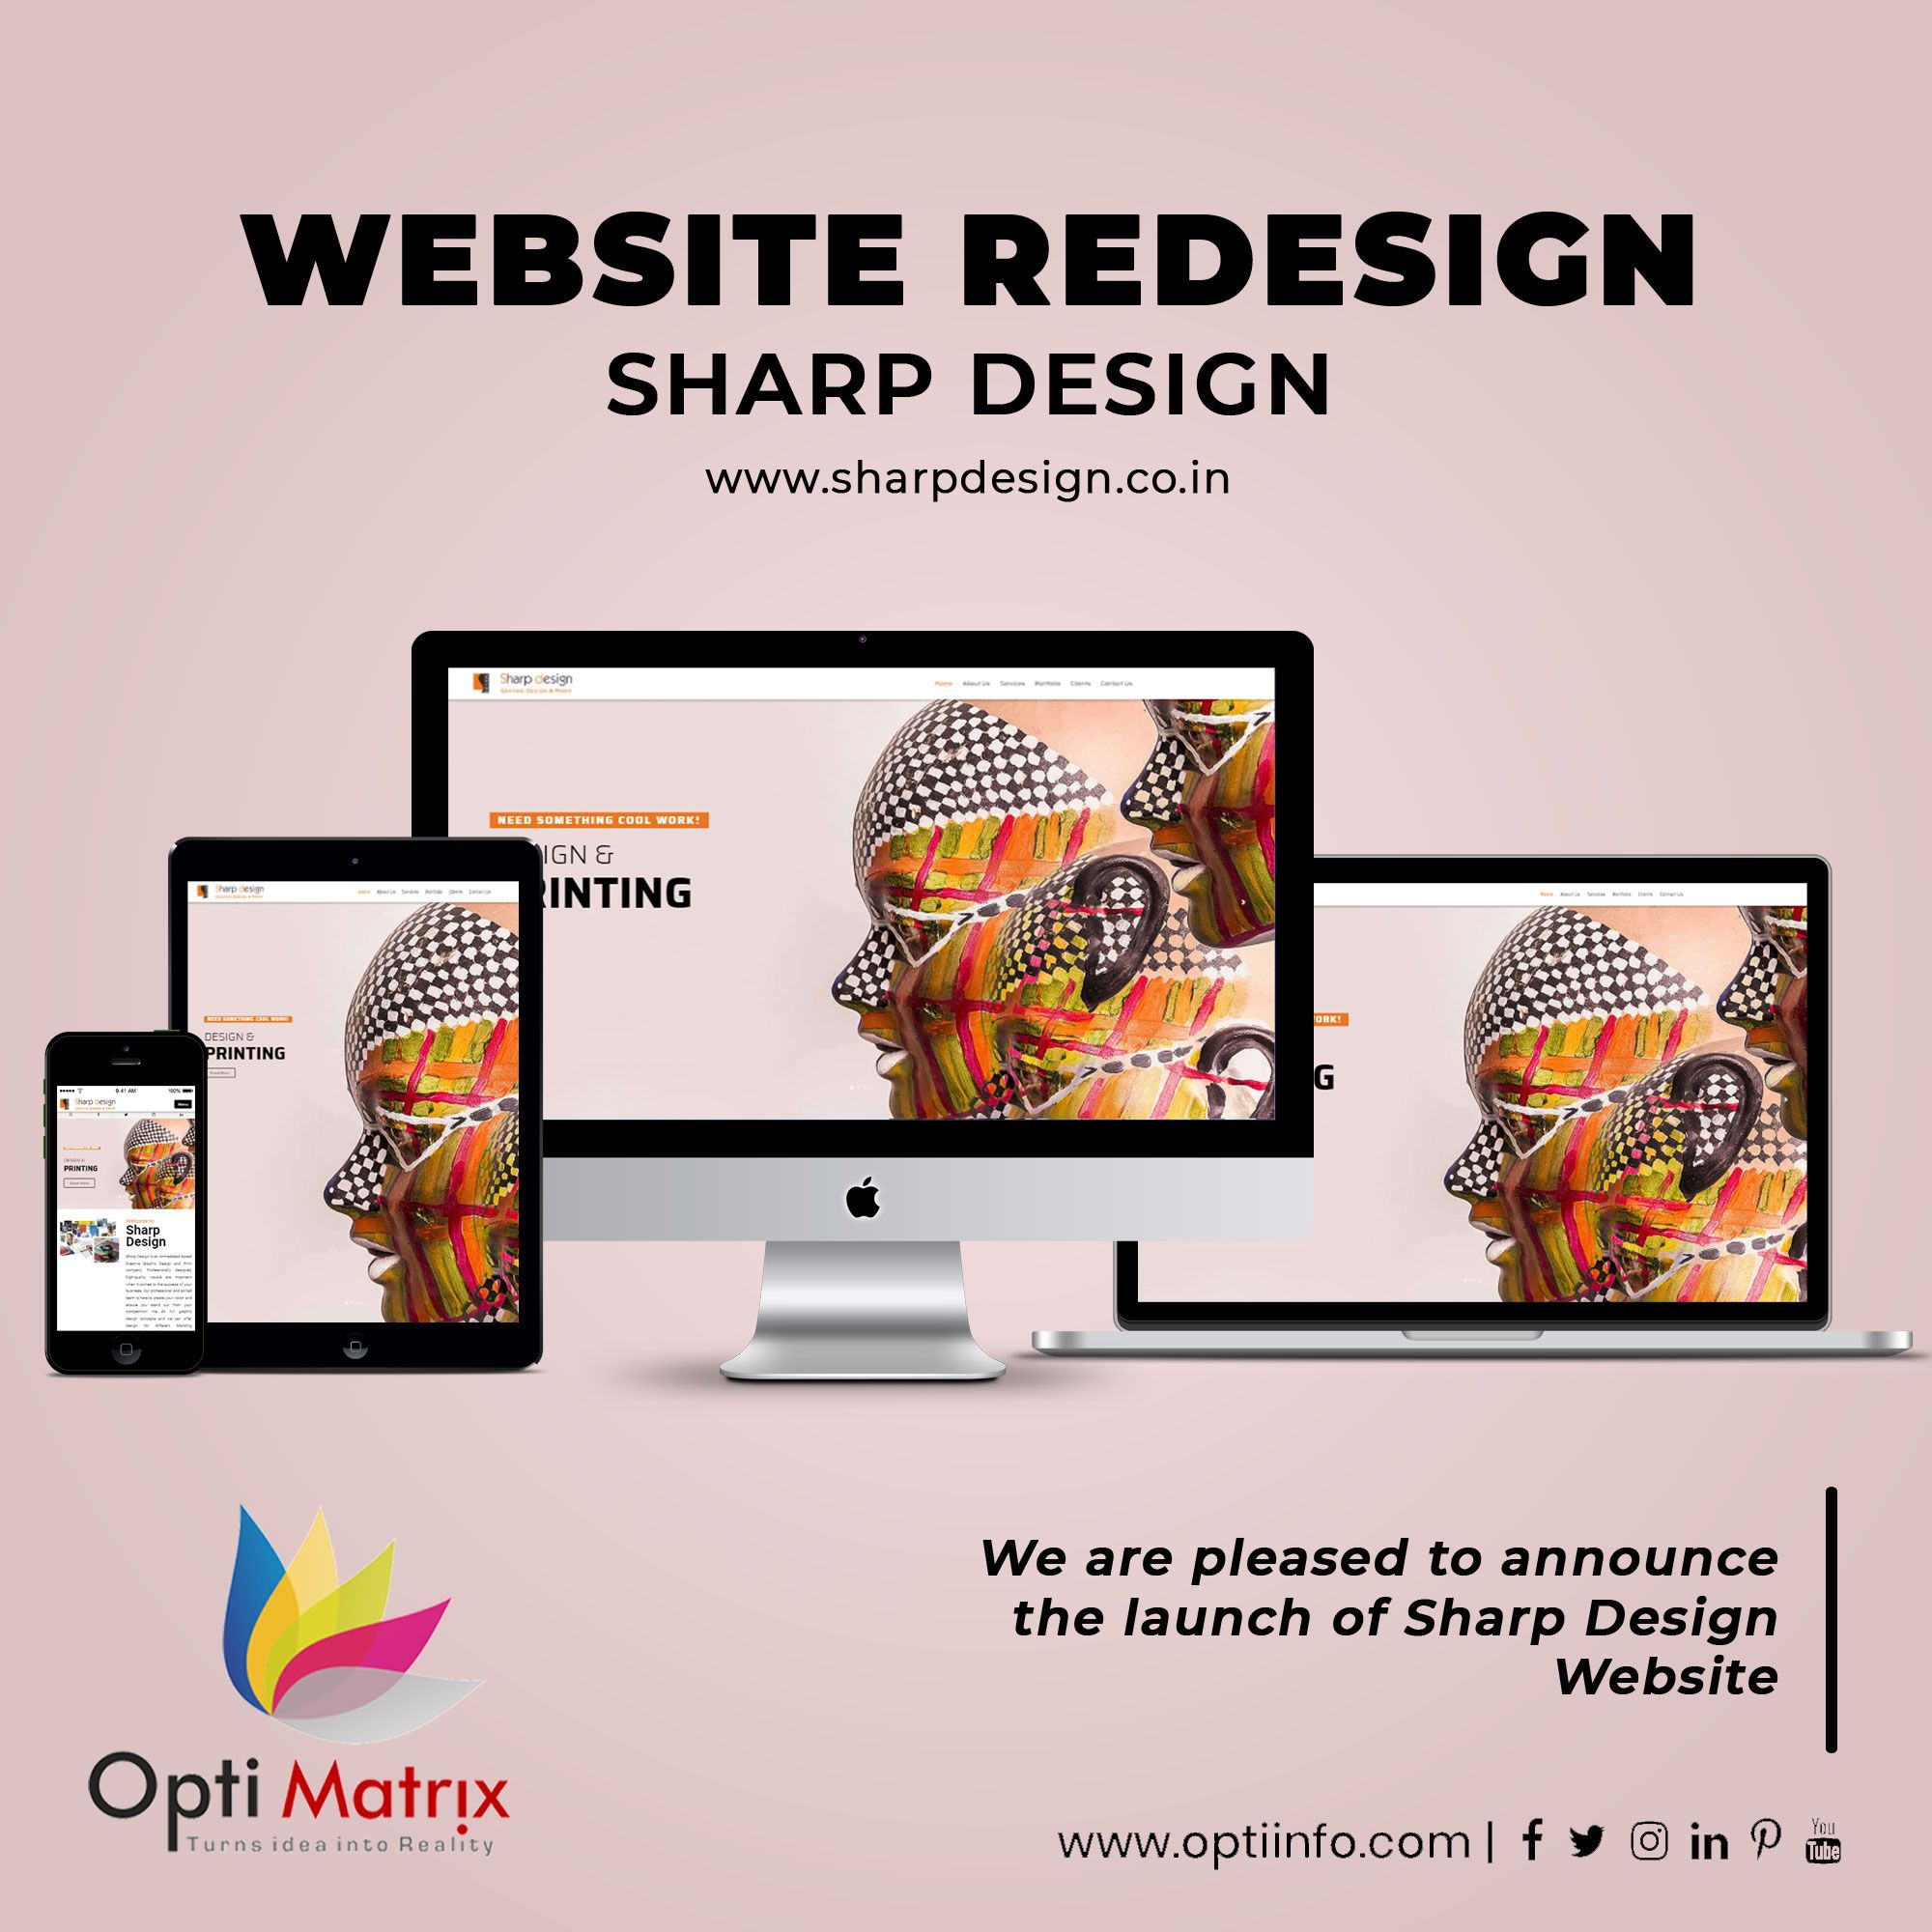 As part of our website redesign project for Sharp Design, Opti Matrix Solution has created easy to Navigate & user-friendly perfect Responsive Website.  Take a look at the complete website redesign project and leave your feedback: www.sharpdesign.co.in  #webagency #creativeagency #websiteredesign #pharmawebsite #redesign #website #optiinfo #ahmedabad #bhuj #GetYourWebsite #CustomWebDesign #WebsiteDesign #WebsiteIn2020